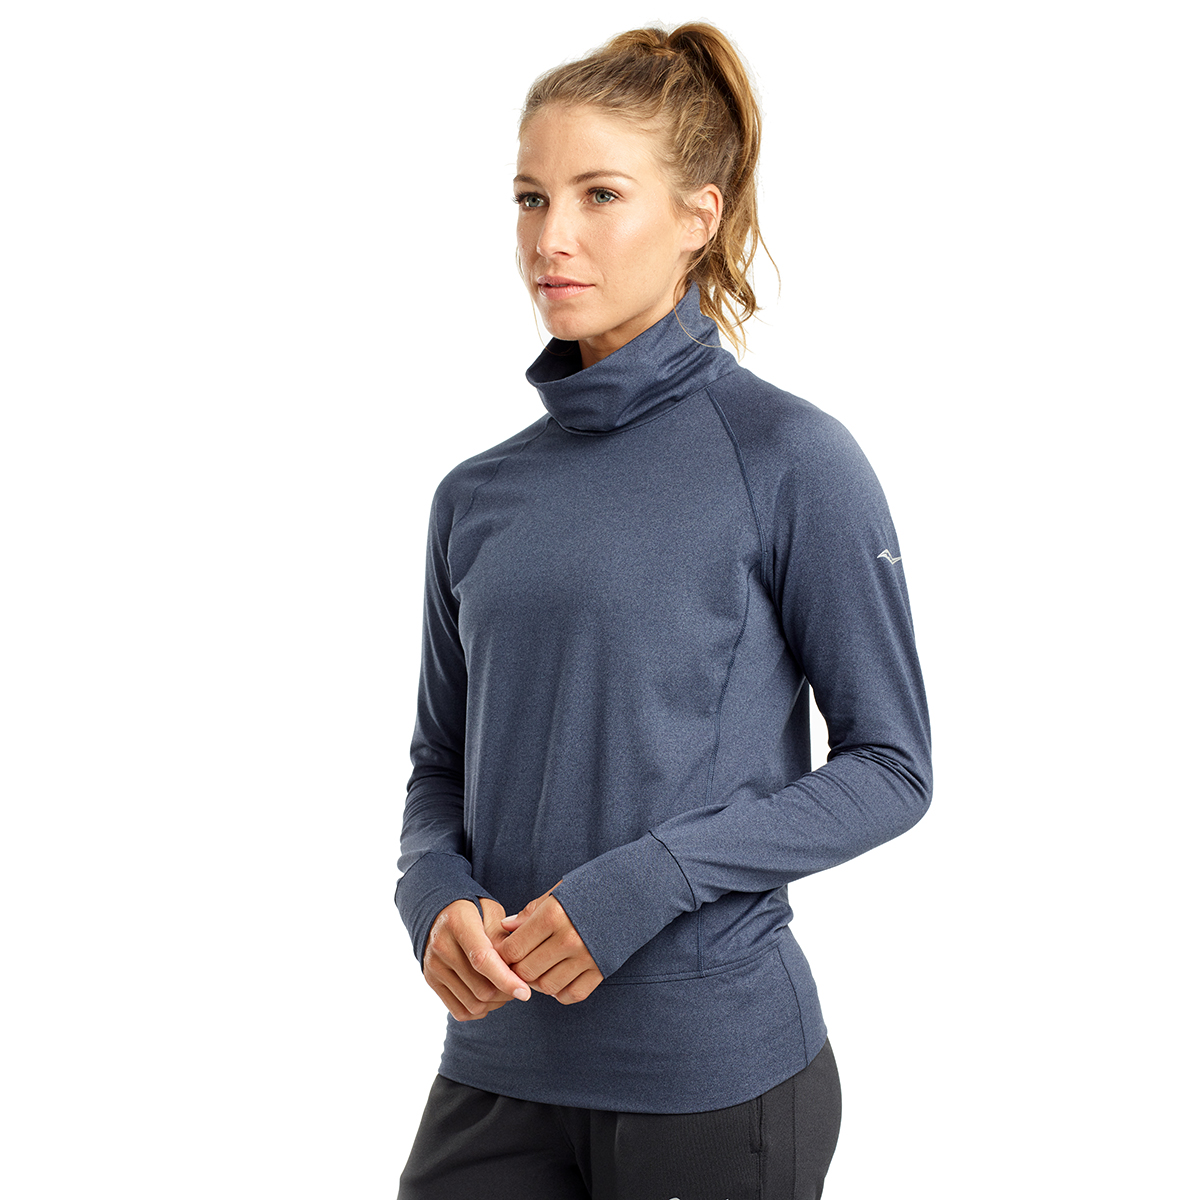 Women's Saucony Sunday Funnel Neck Pullover - Color: Mood Indigo Heather - Size: M, Mood Indigo Heather, large, image 1